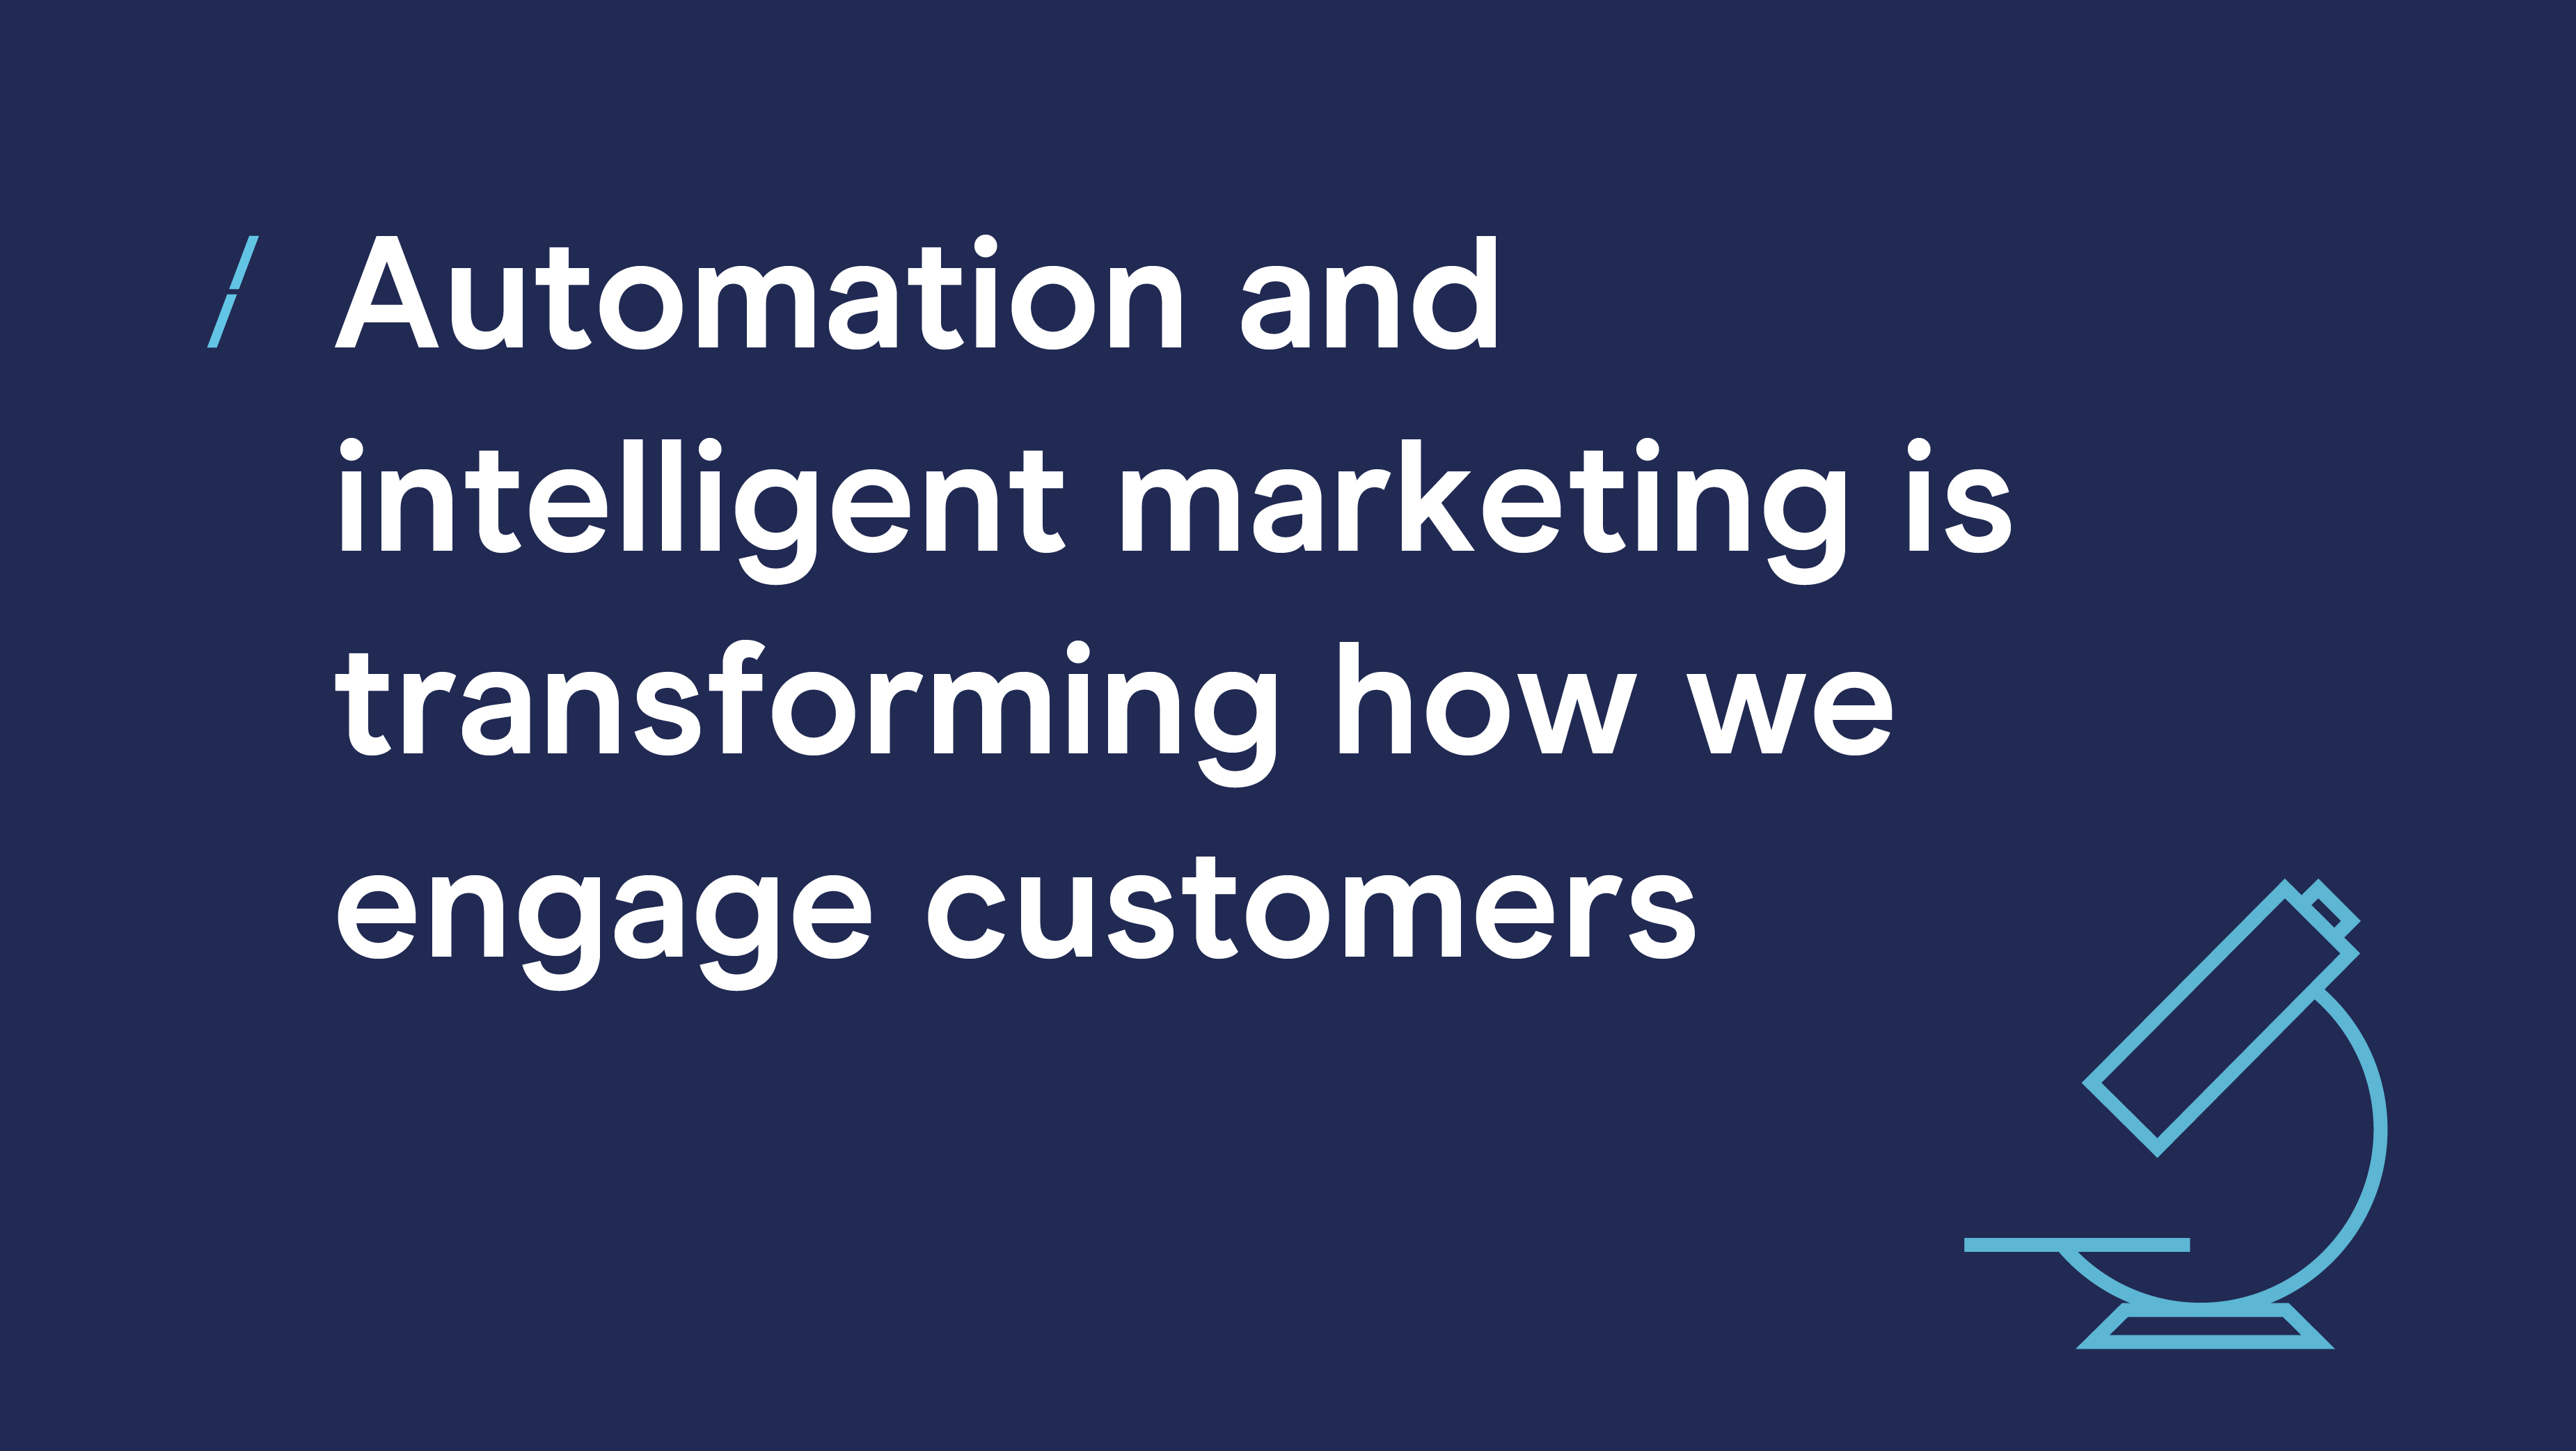 Automation and intelligent marketing.jpg